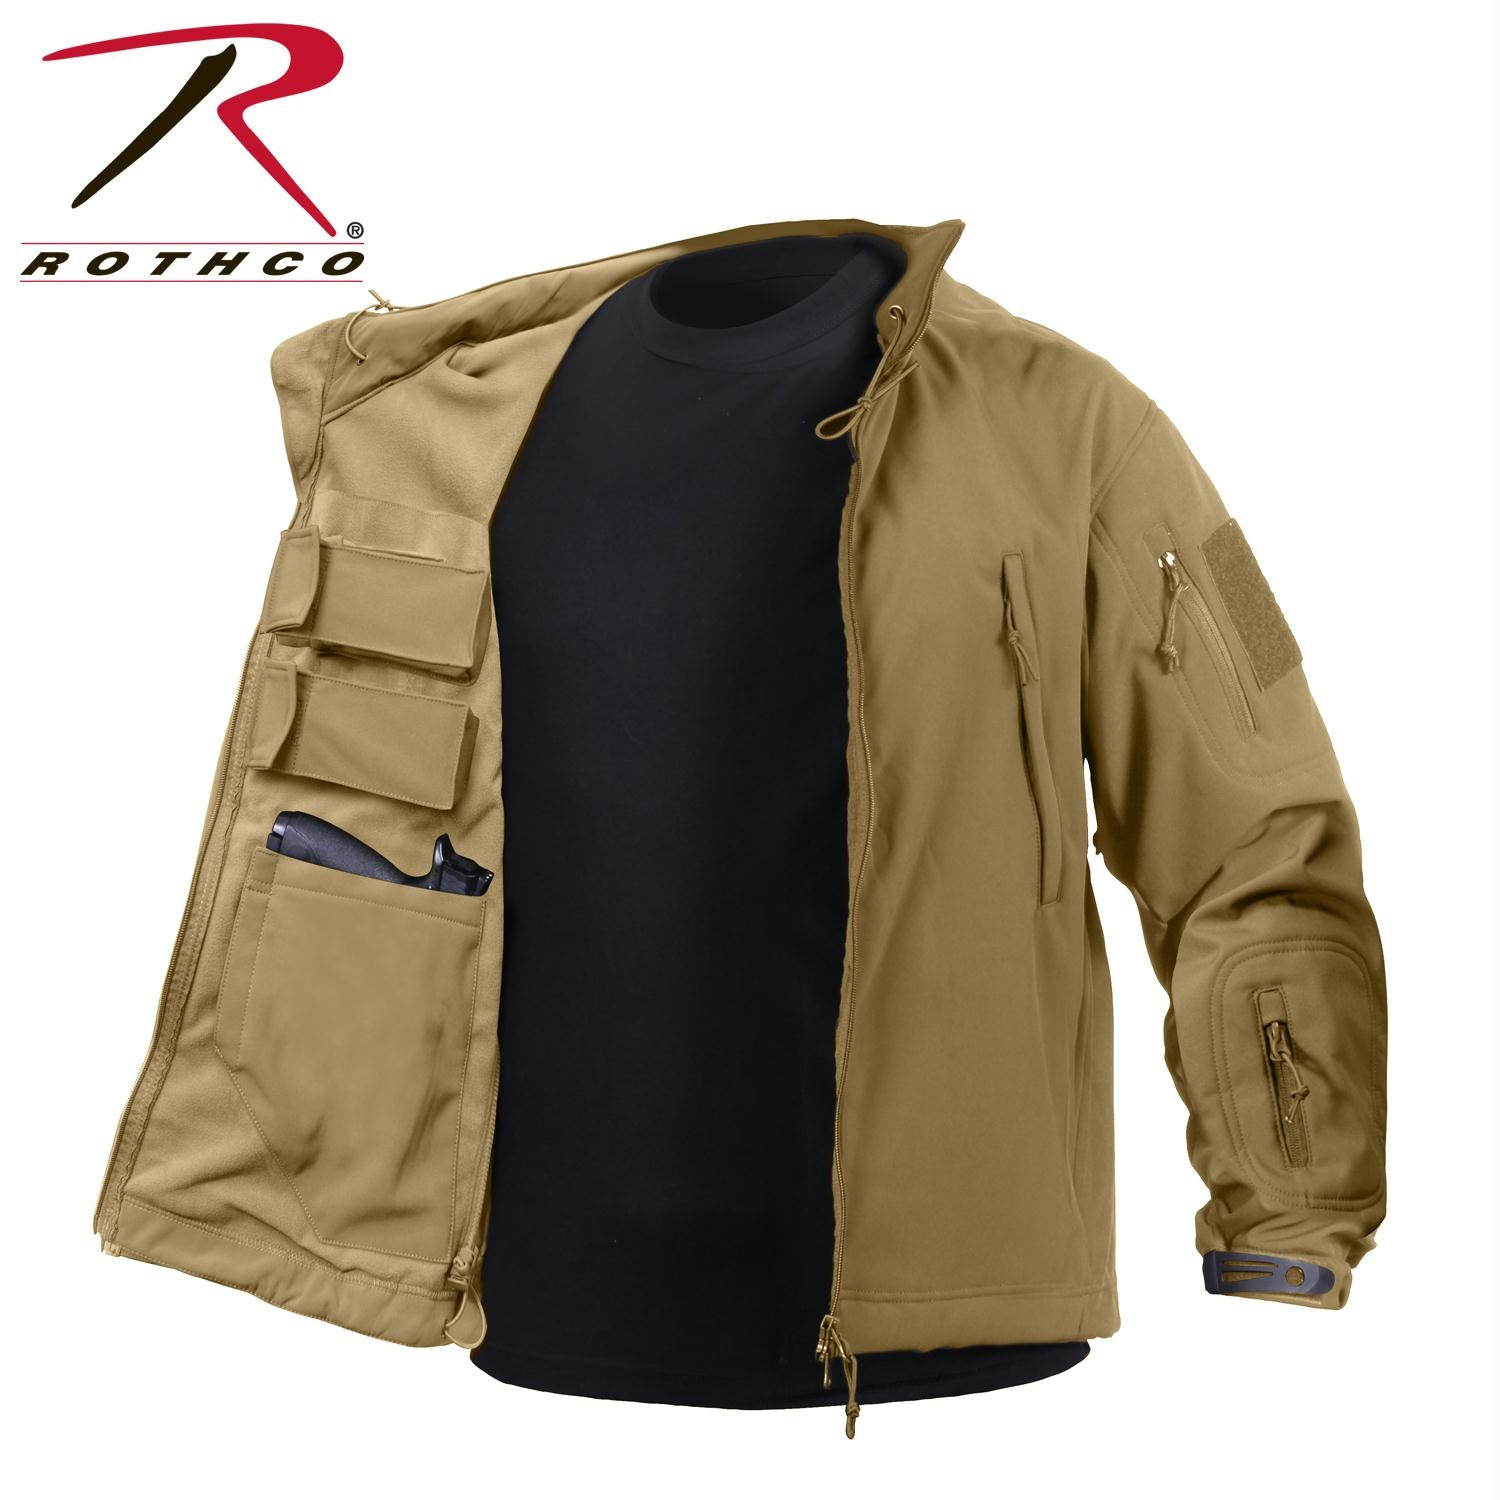 Rothco Concealed Carry Soft Shell Jacket - Coyote Brown / XL